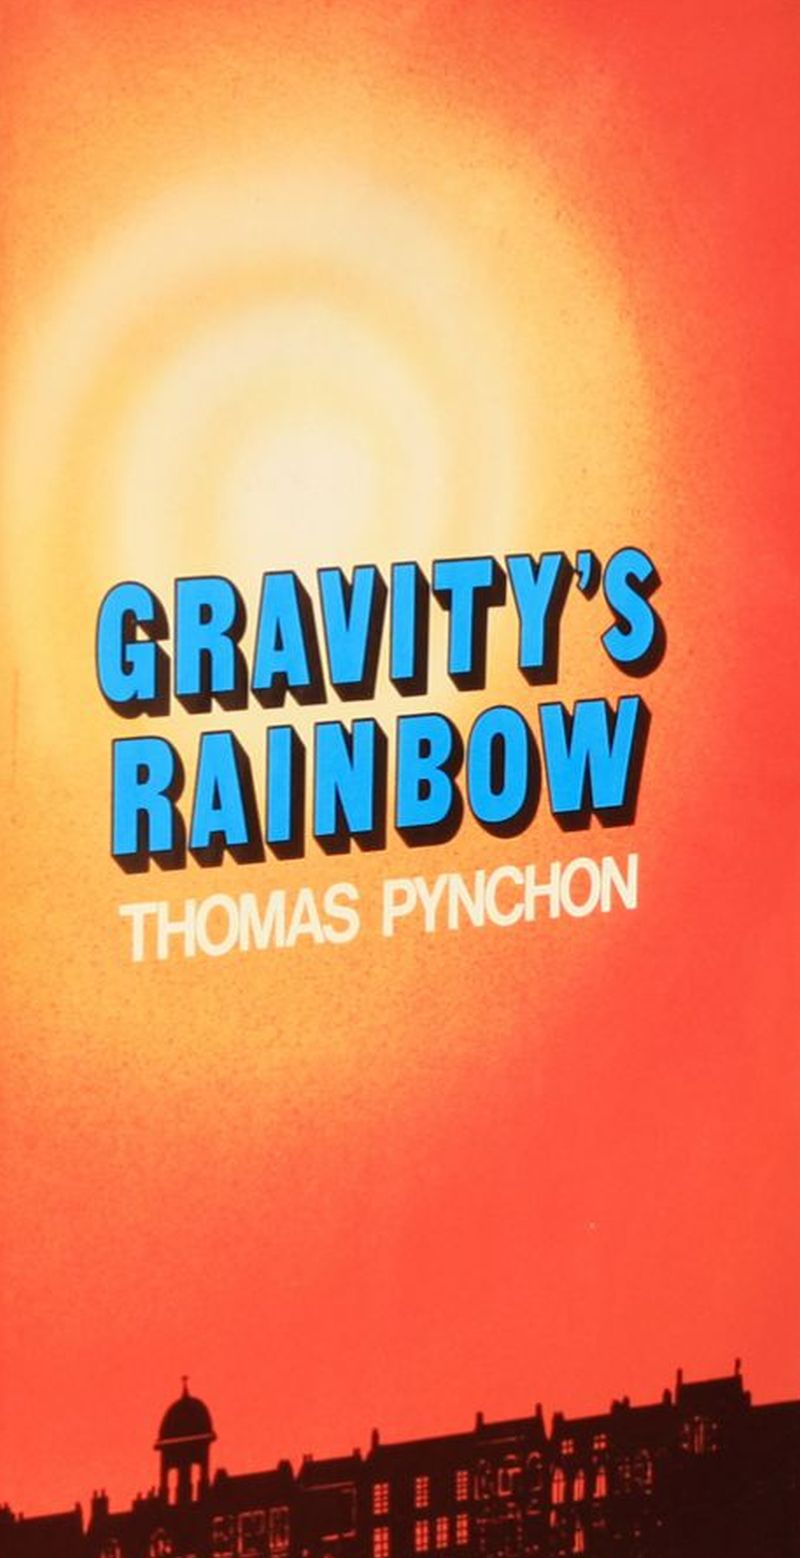 Thomas Pynchon's 'Gravity's Rainbow'